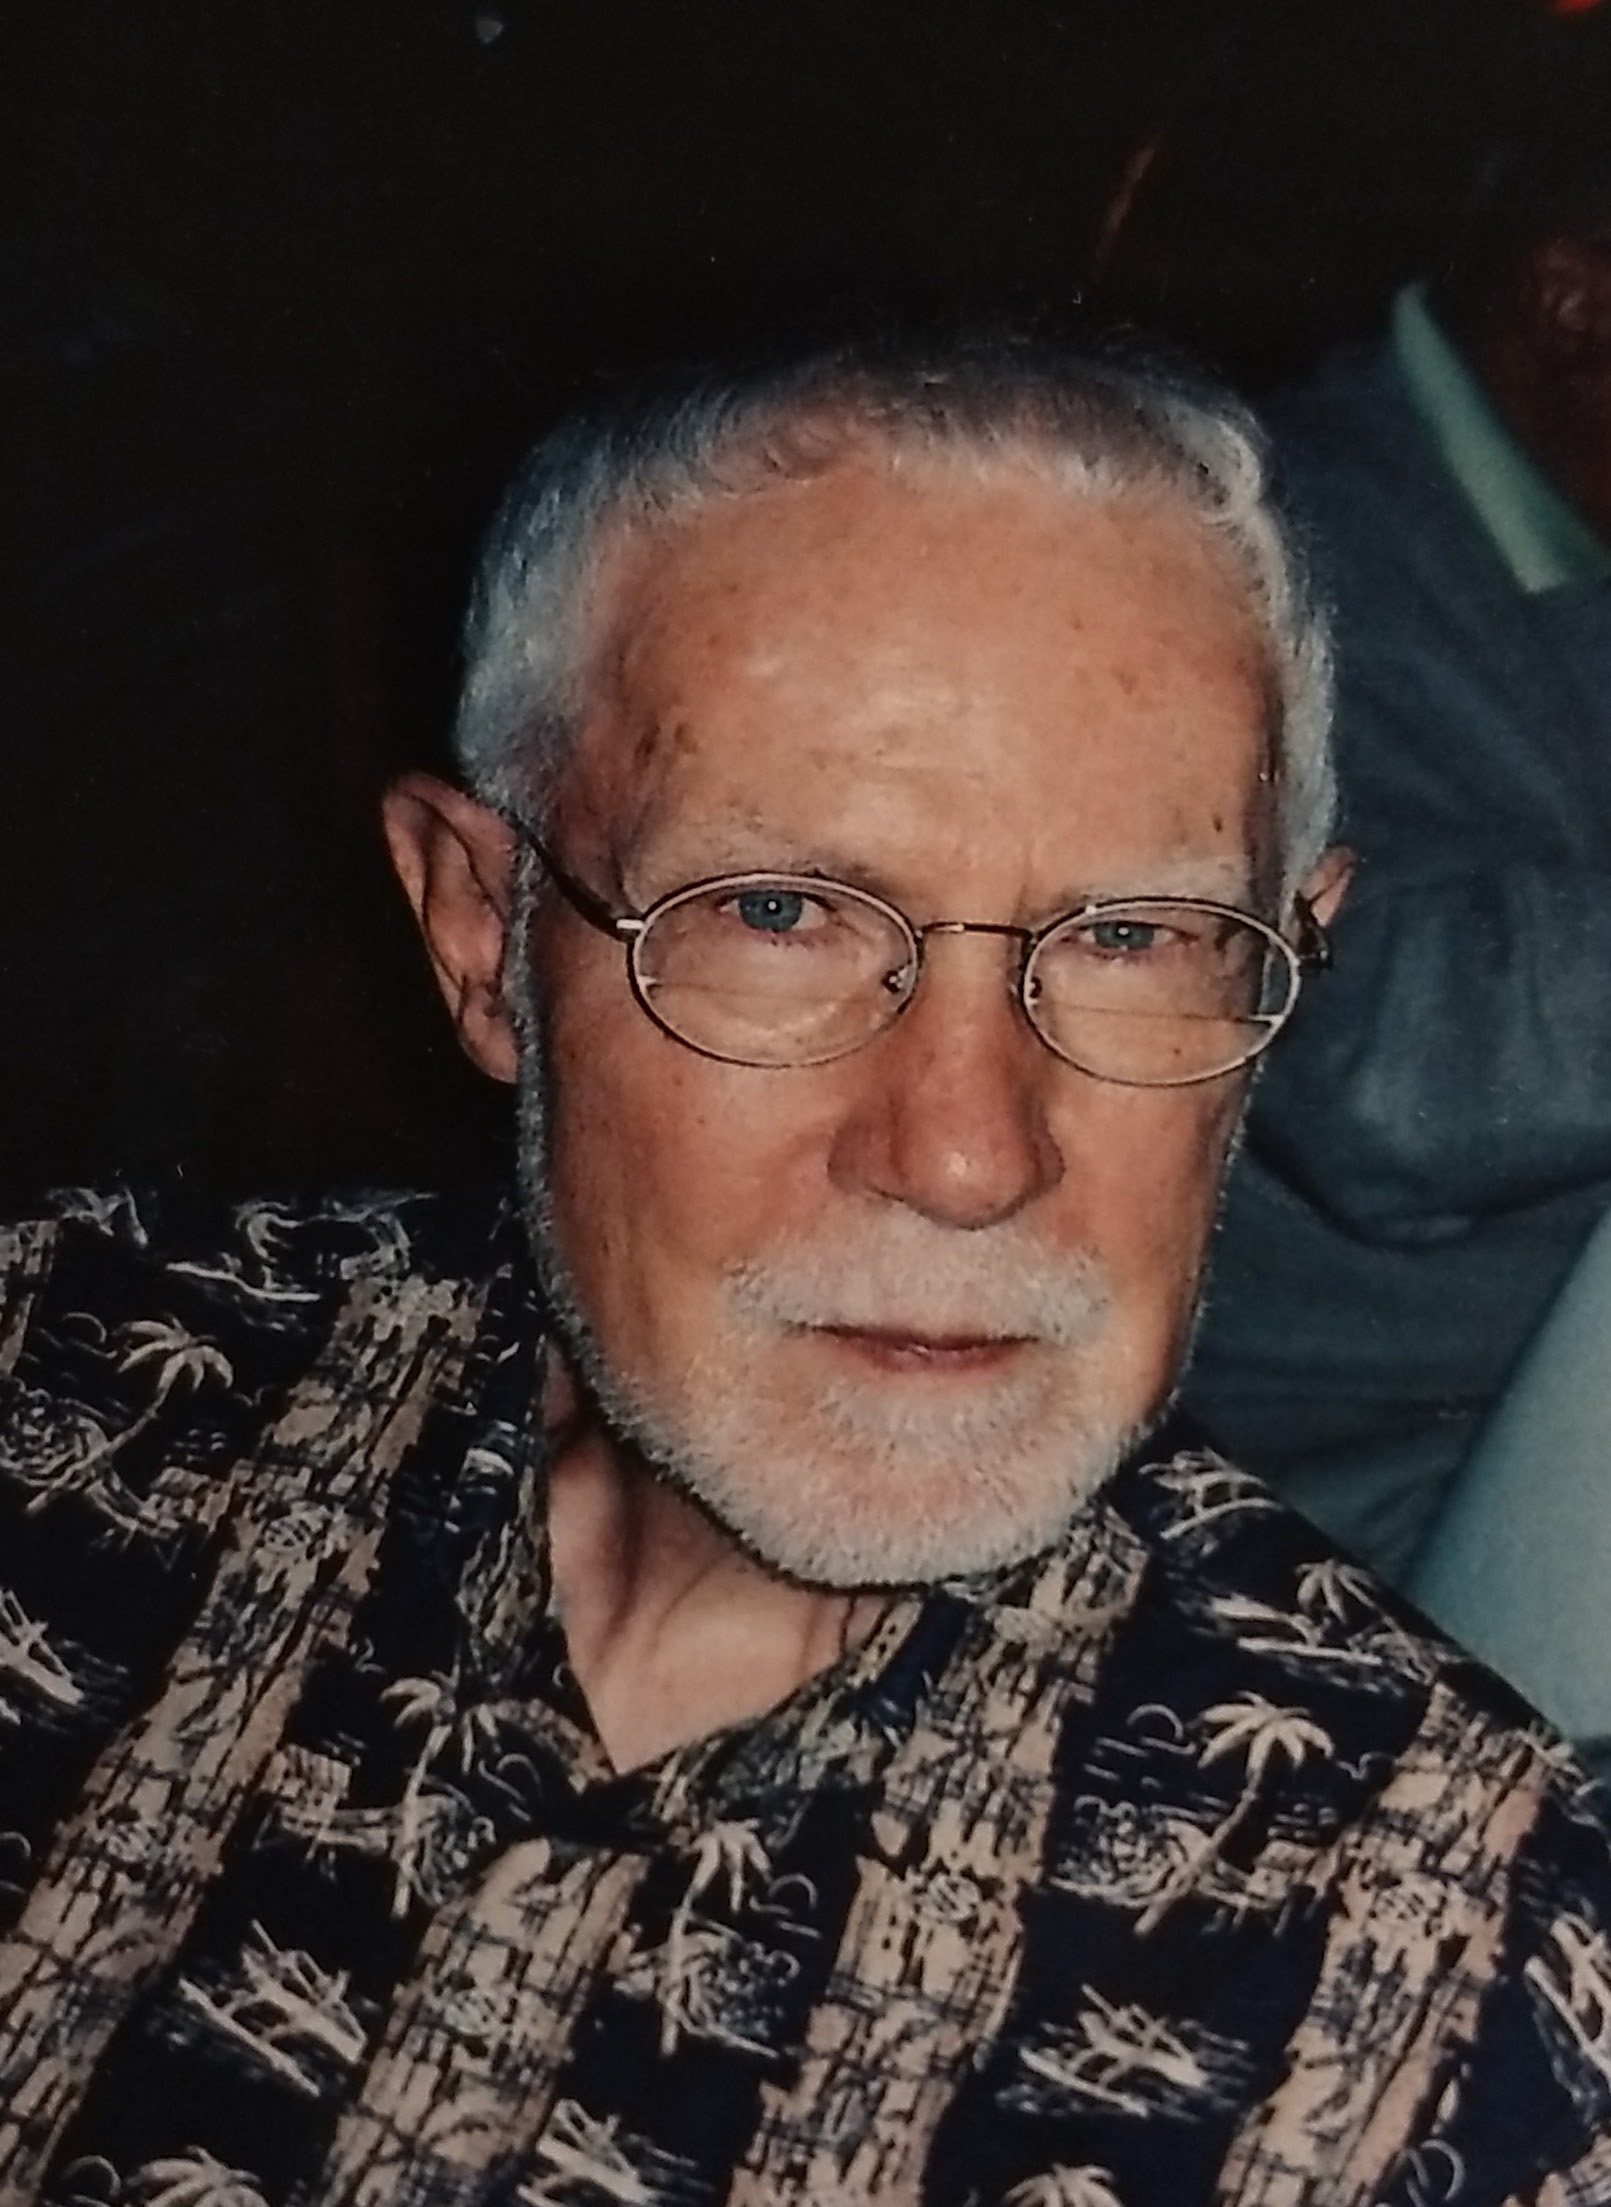 Dr. Denton Morrison (1932-2019) shares his life story